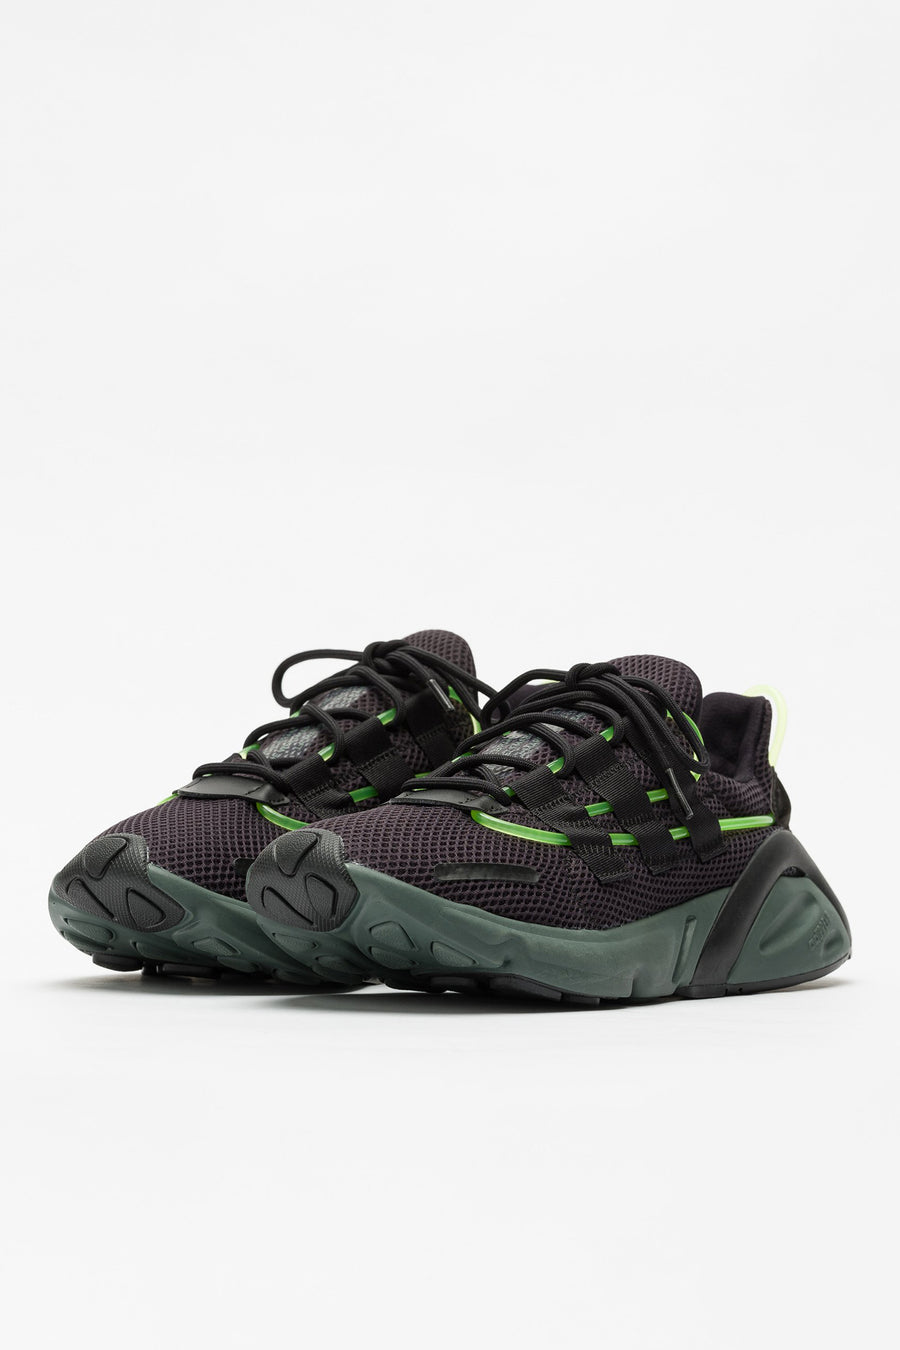 adidas LXCON in Black/Green - Notre